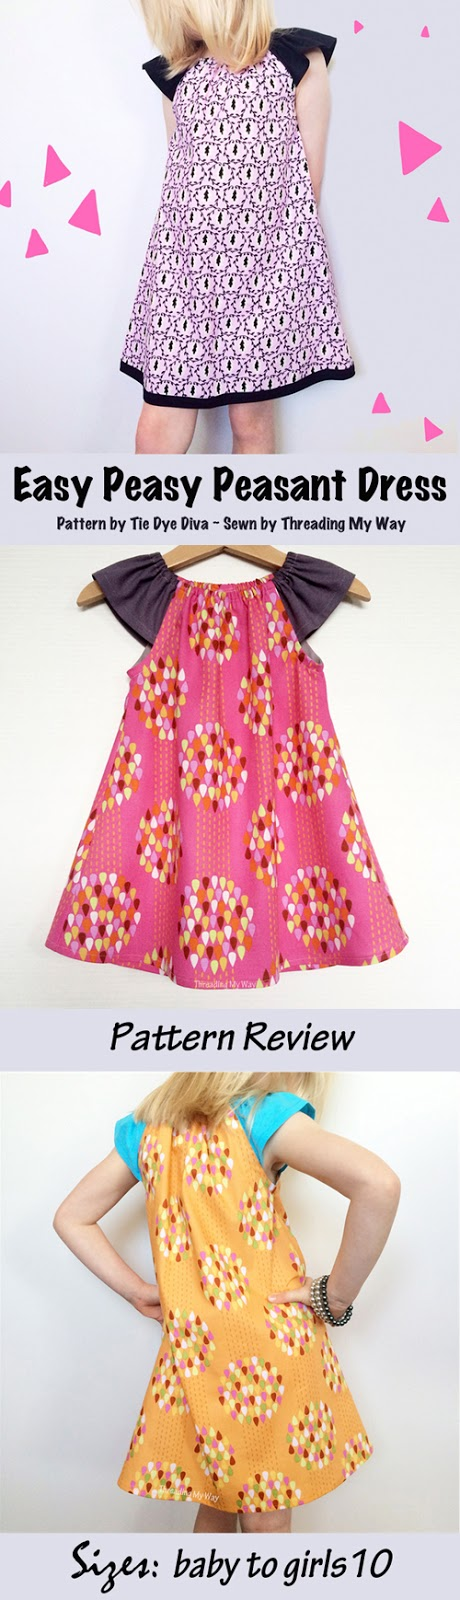 Easy Peasy Peasant Dress by Tie Dye Diva ~ Pattern Review by Threading My Way